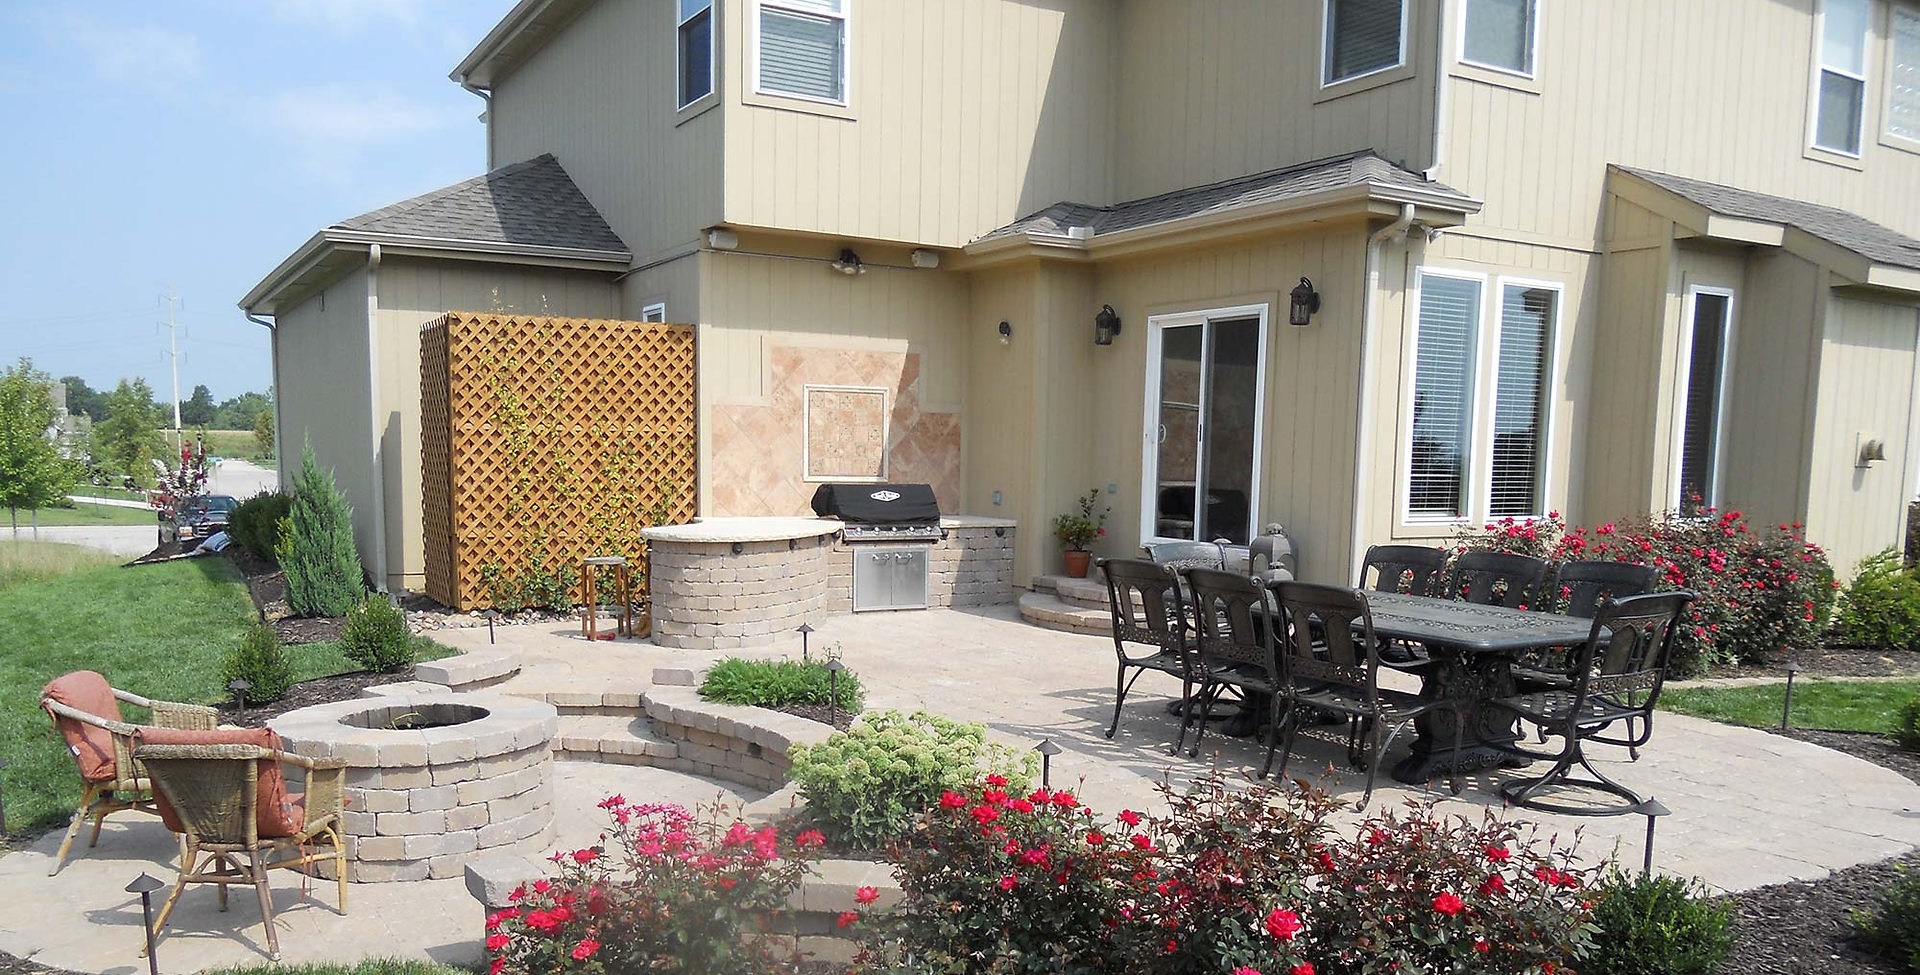 Outlook Hardscape complete outdoor patio makeover in Lenexa, KS.